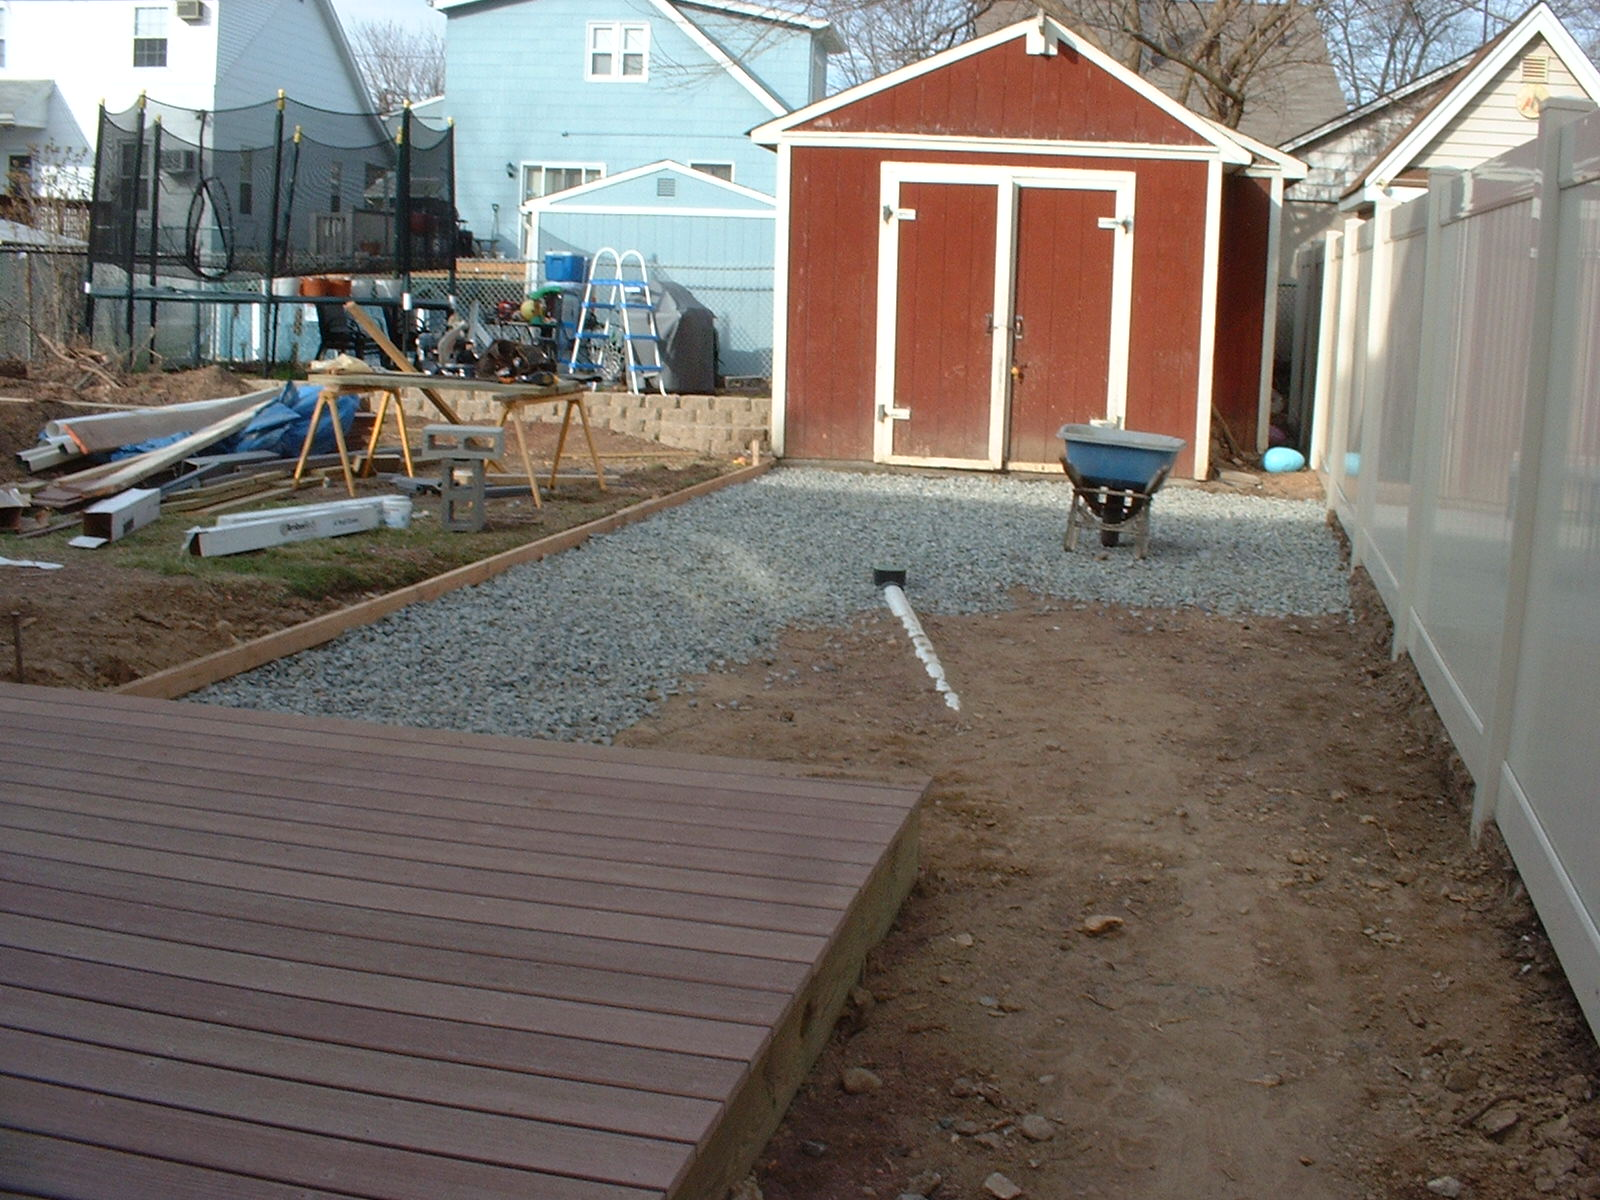 The lower deck is complete and we have started to put stone in for the patio base.